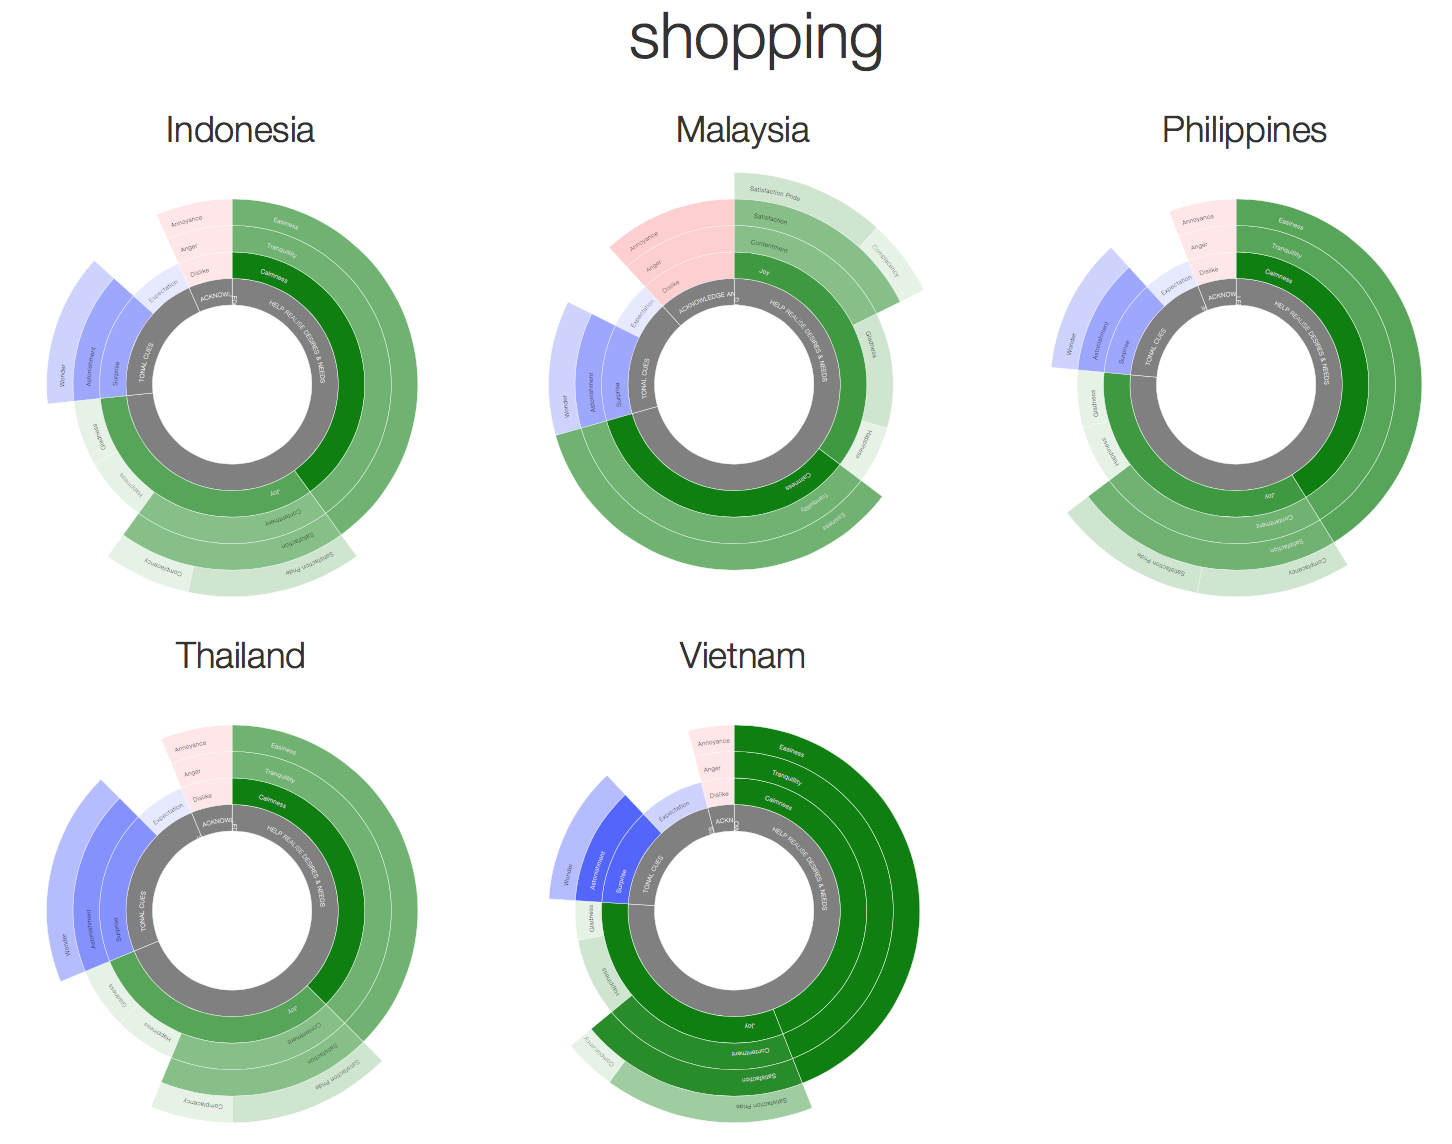 ASEAN country brand shopping/retail narrative emotional response